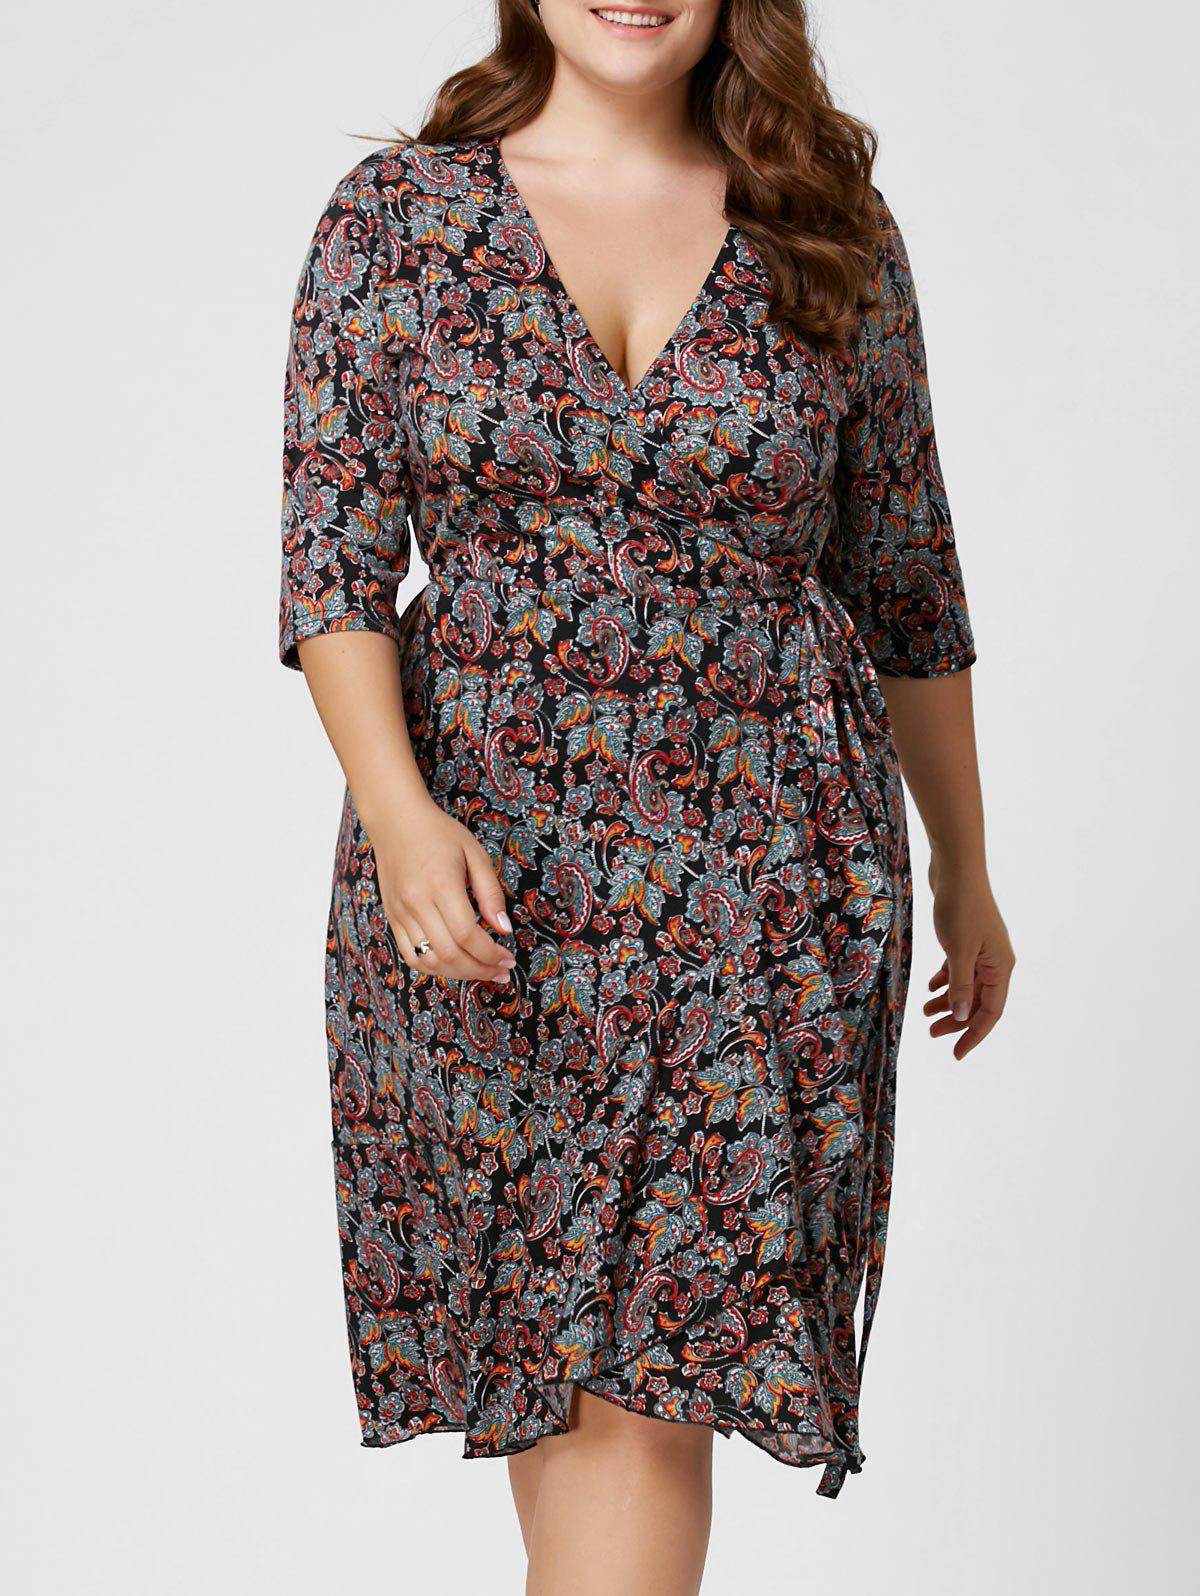 Plus Size Paisley Overlap Wrap DressWOMEN<br><br>Size: 3XL; Color: COLORMIX; Style: Bohemian; Material: Polyester; Silhouette: A-Line; Dresses Length: Knee-Length; Neckline: V-Neck; Sleeve Length: 3/4 Length Sleeves; Pattern Type: Paisley; With Belt: No; Season: Fall,Spring,Summer; Weight: 0.3100kg; Package Contents: 1 x Dress;